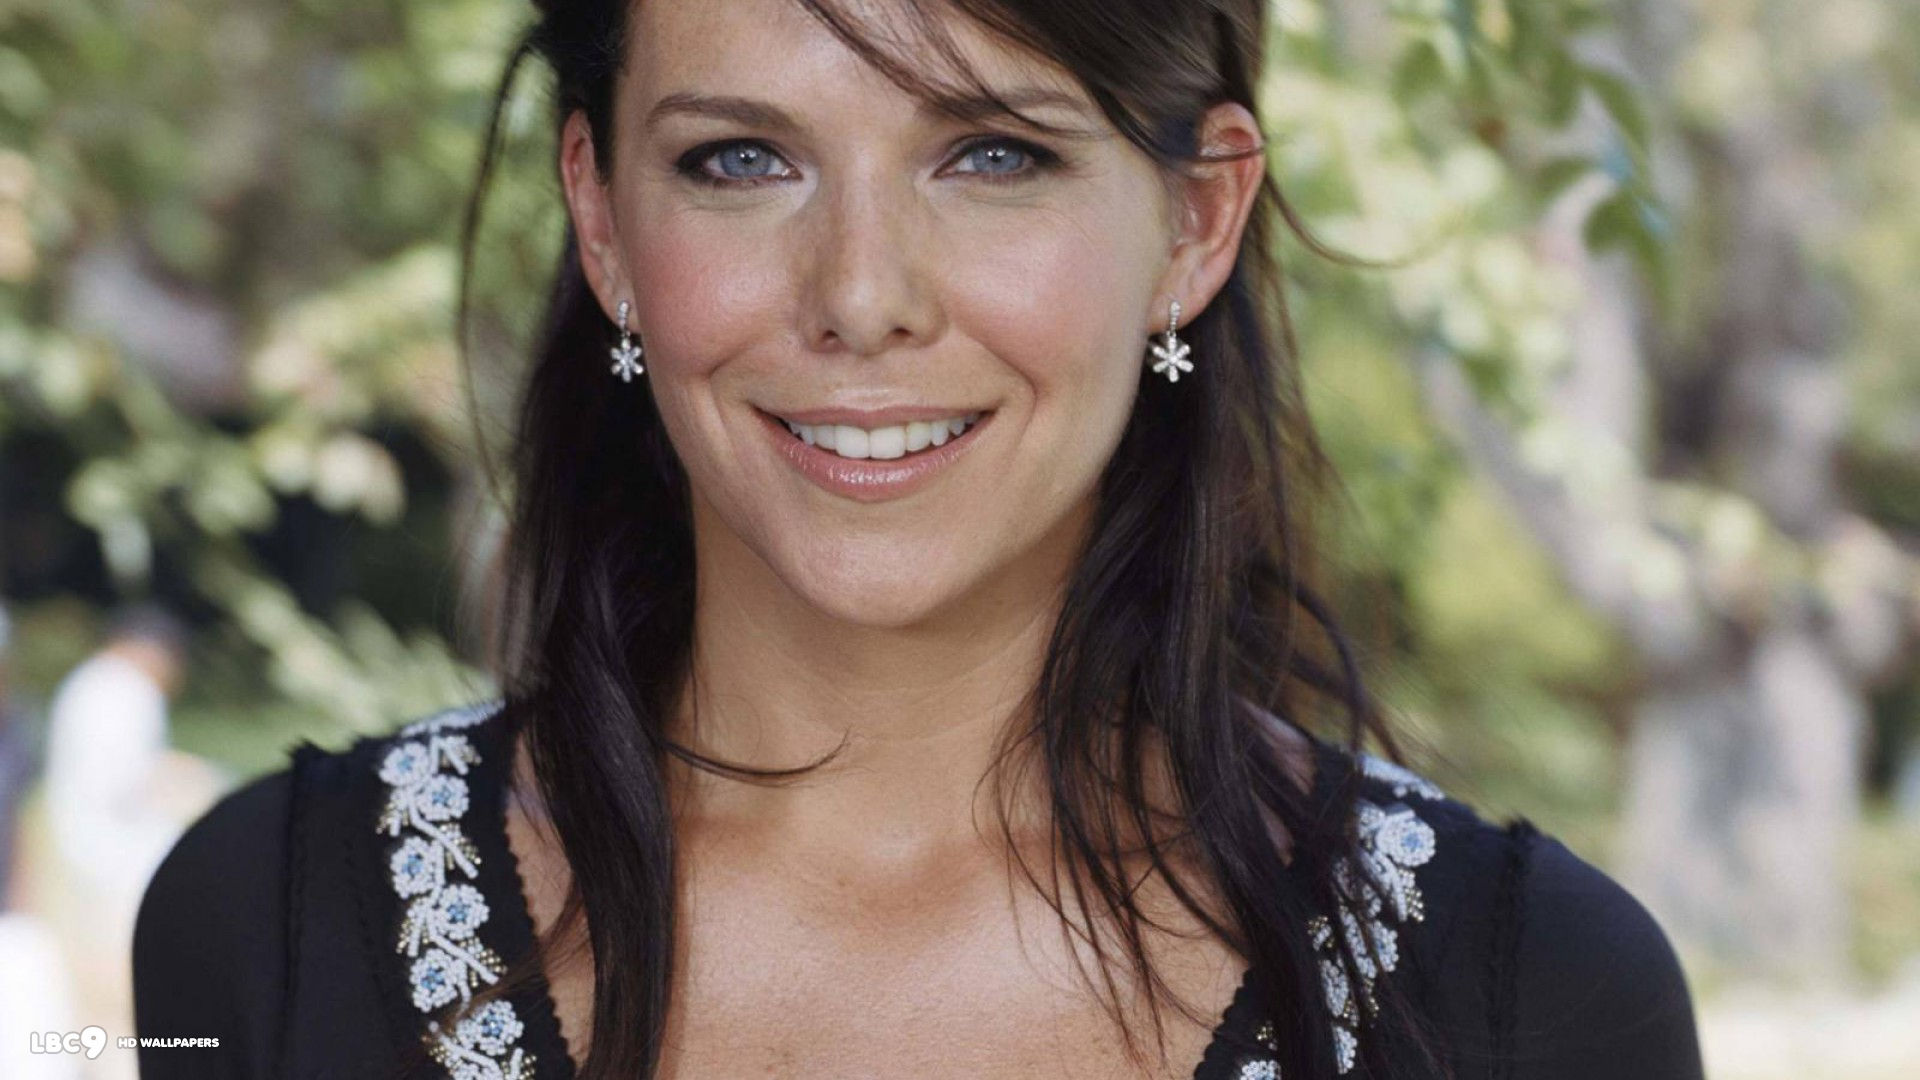 Lauren Graham Wallpapers High Quality | Download Free